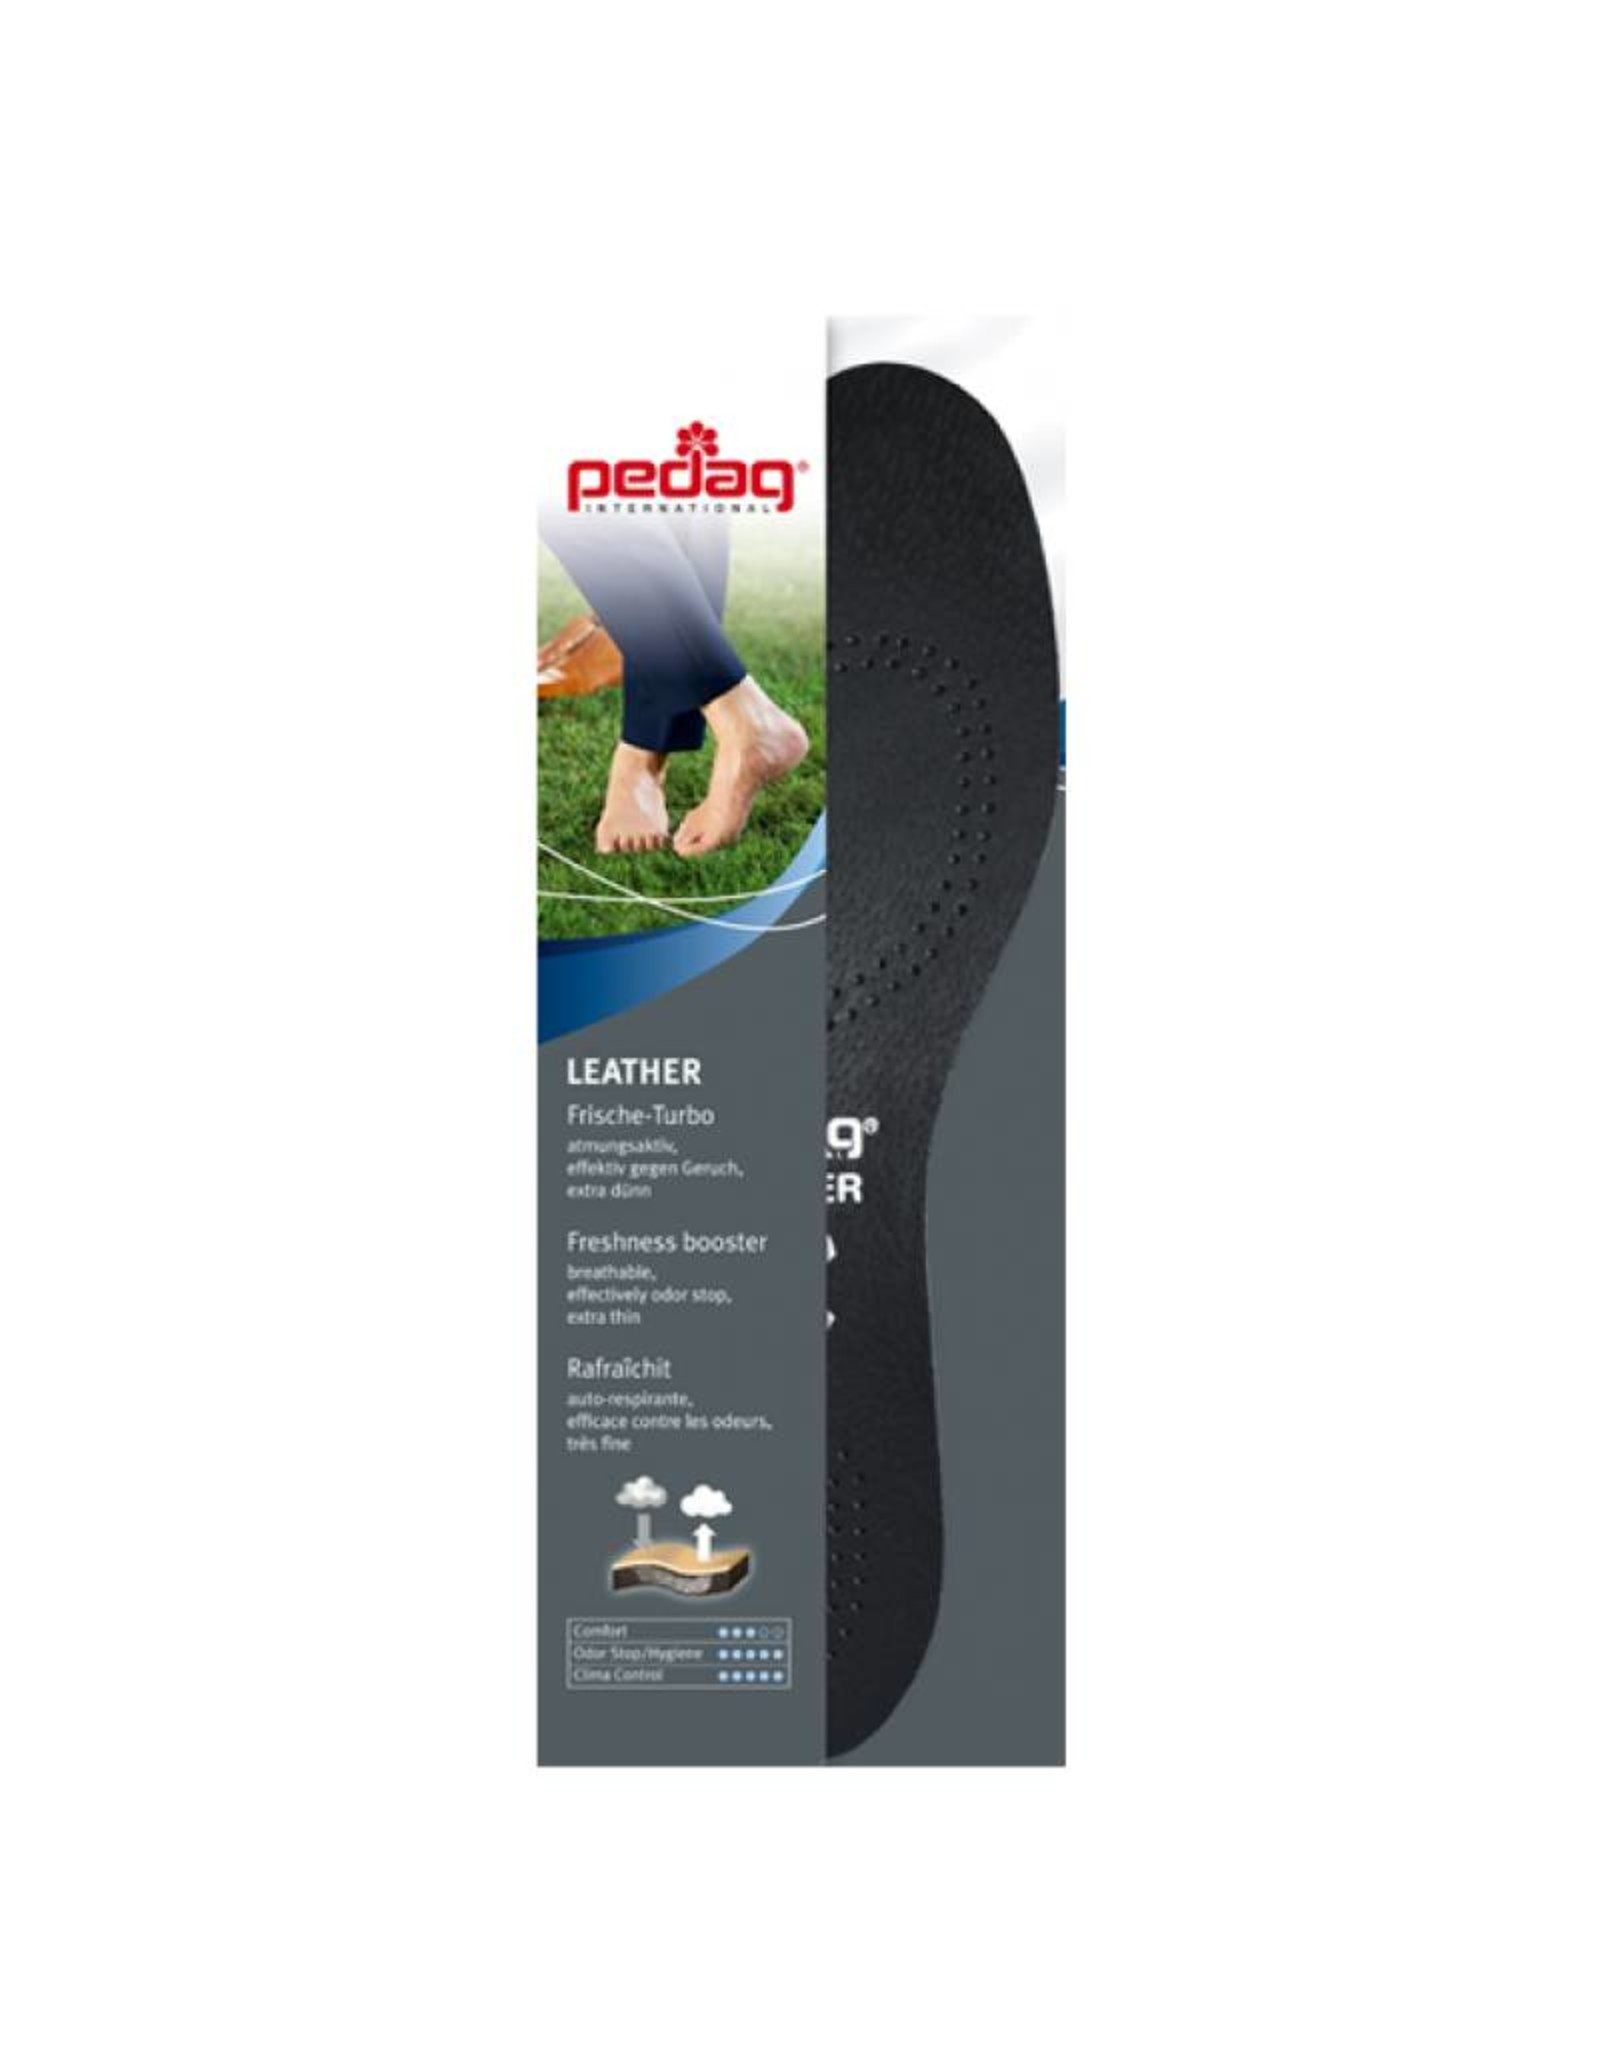 LEATHER- Black leather insoles with carbon filter